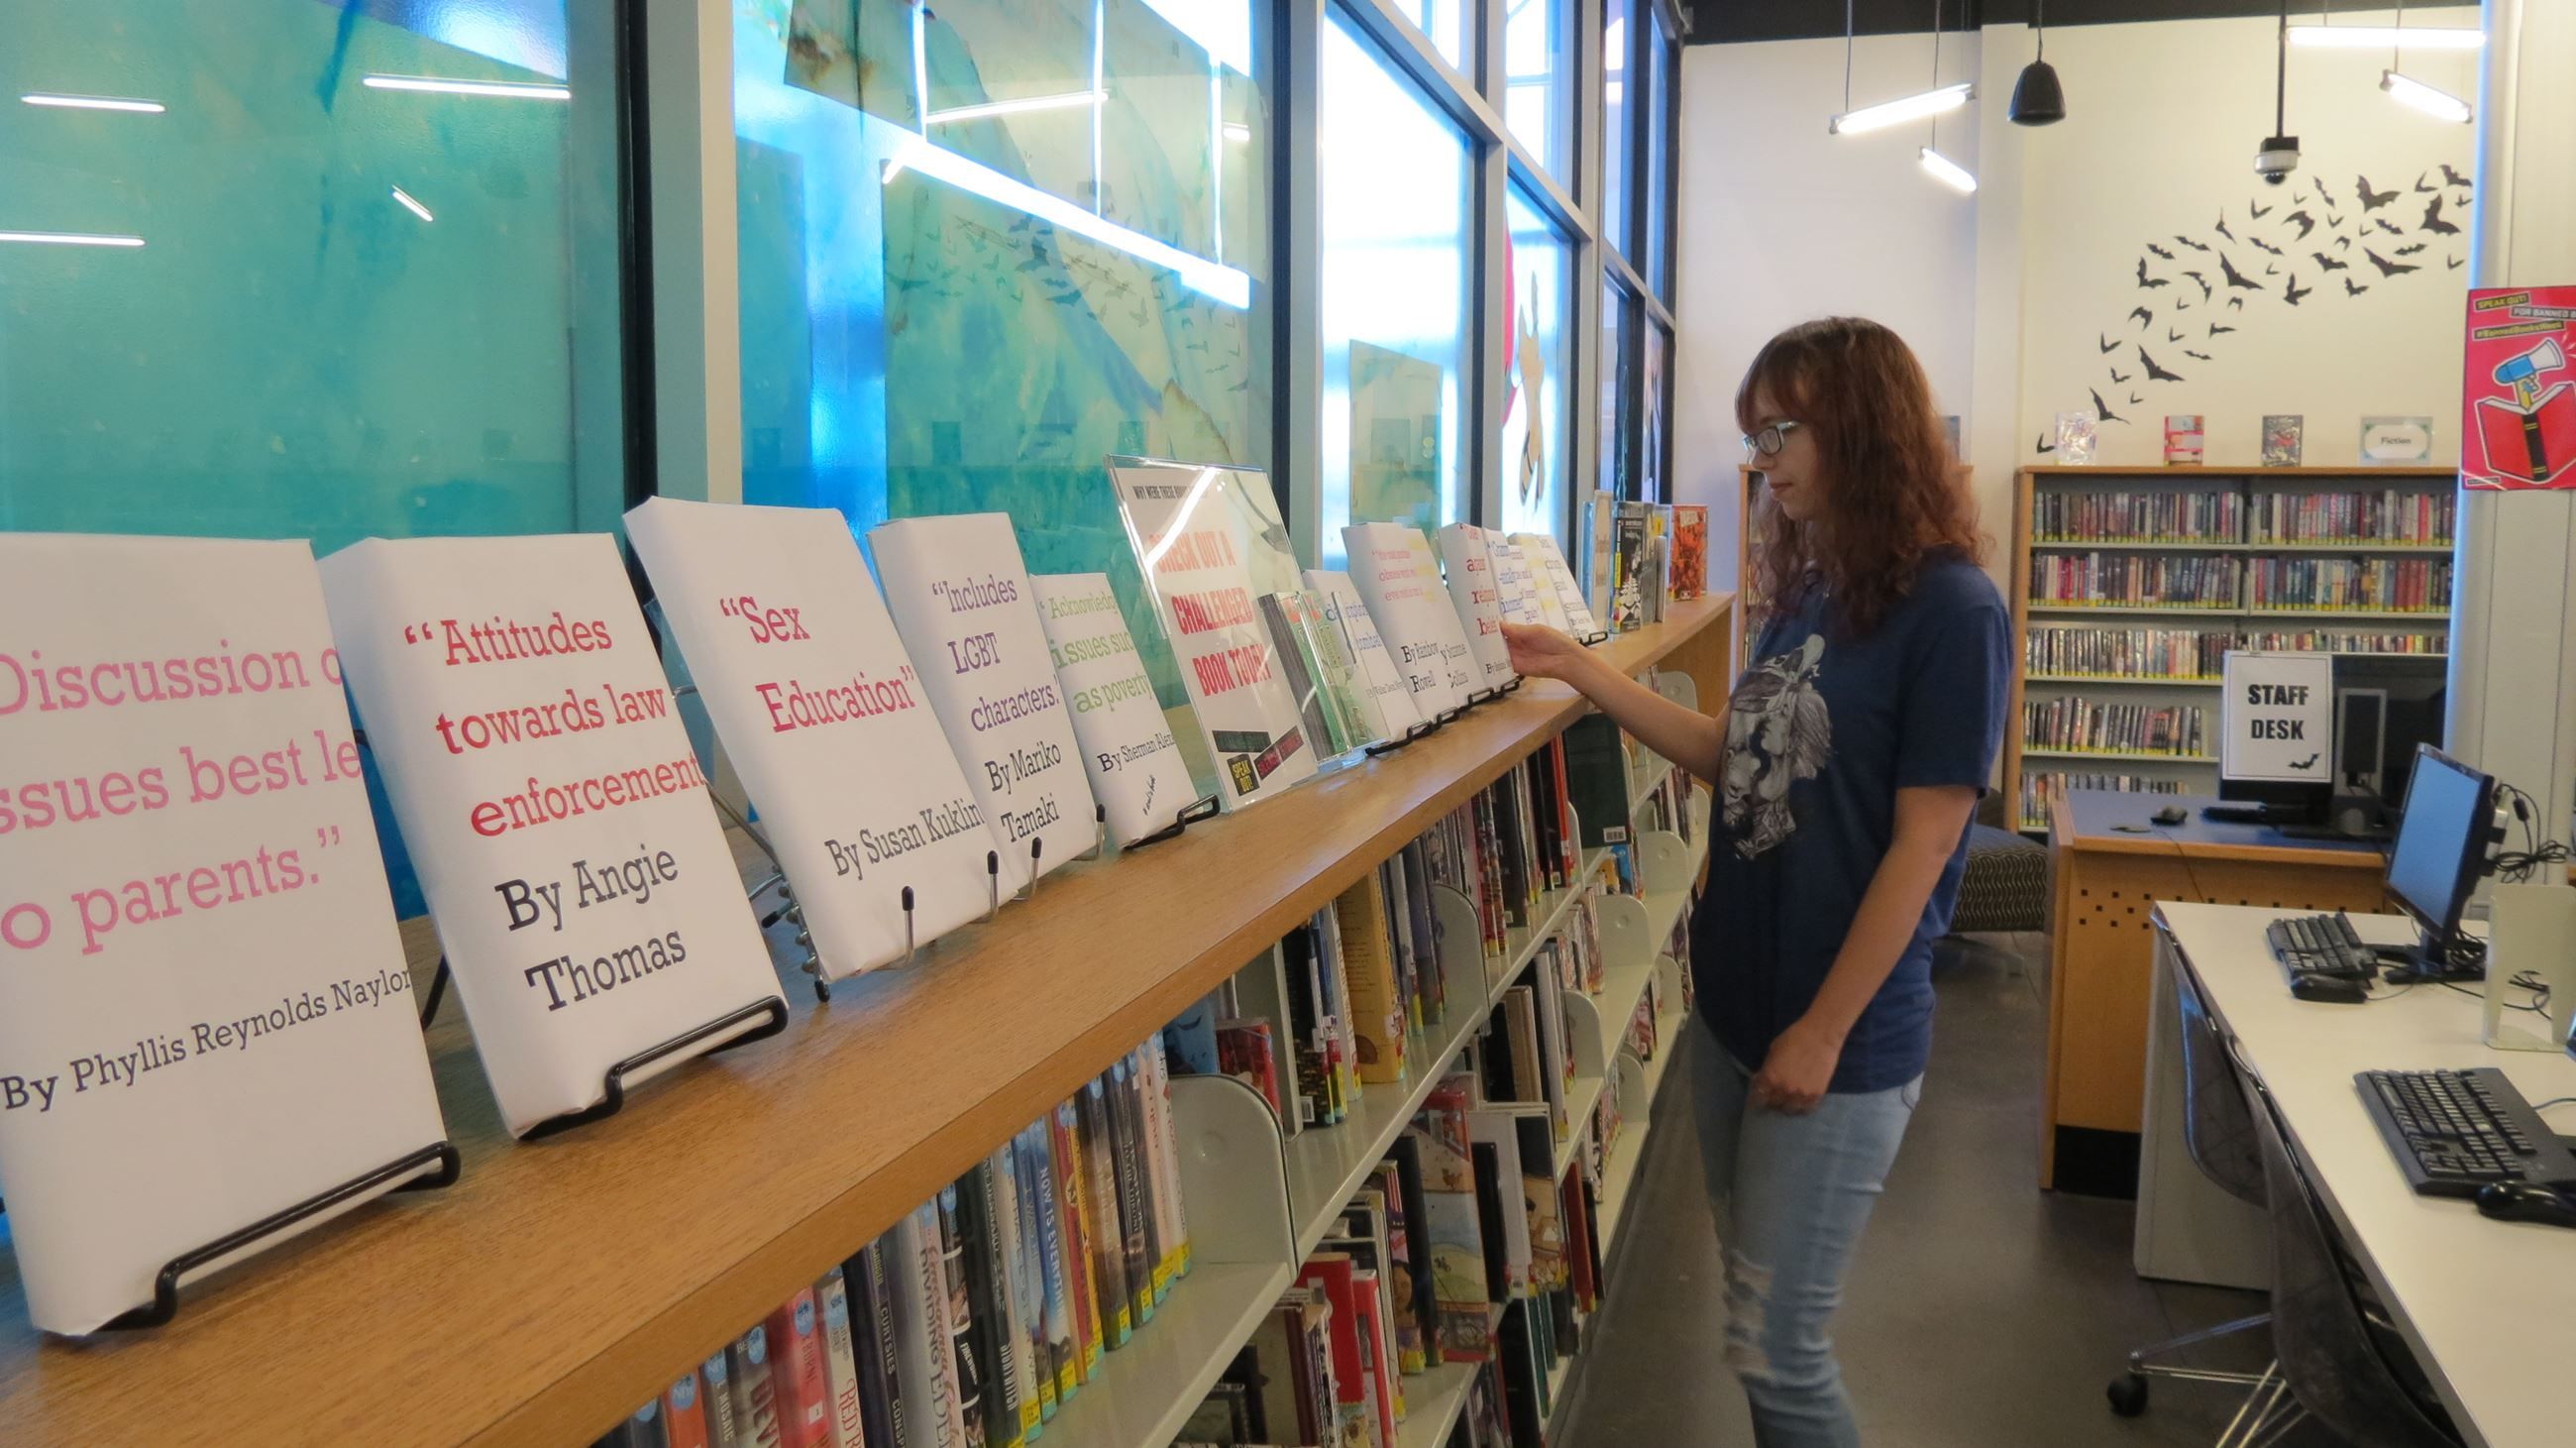 Teen looking at book display